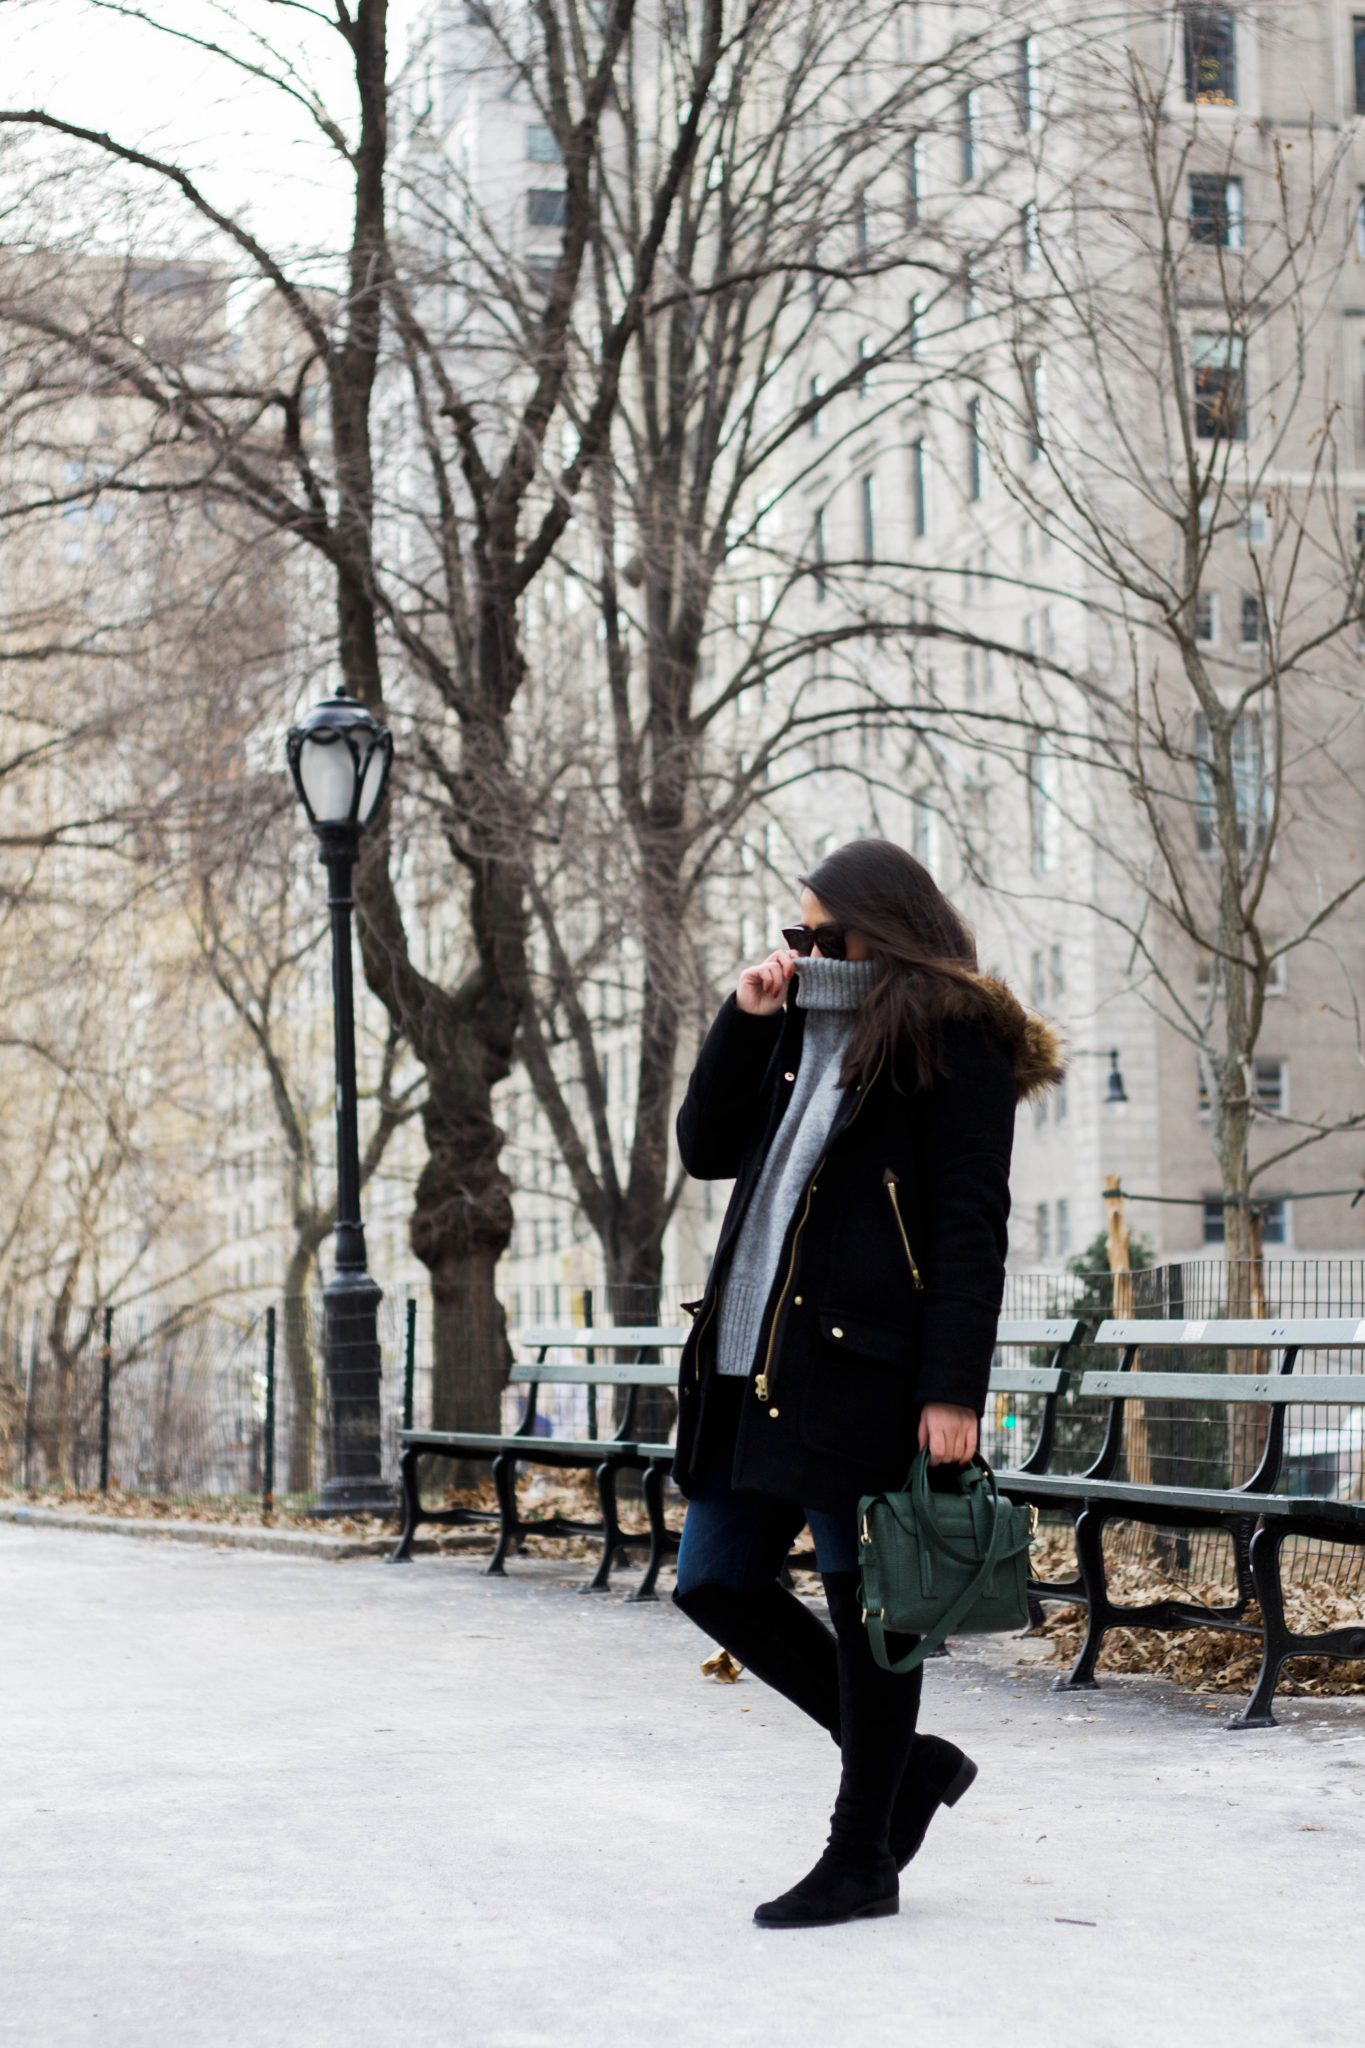 The Chateau Parka: The Best Winter Coat For A Woman On The Go by popular New York fashion blogger Live Laugh Linda